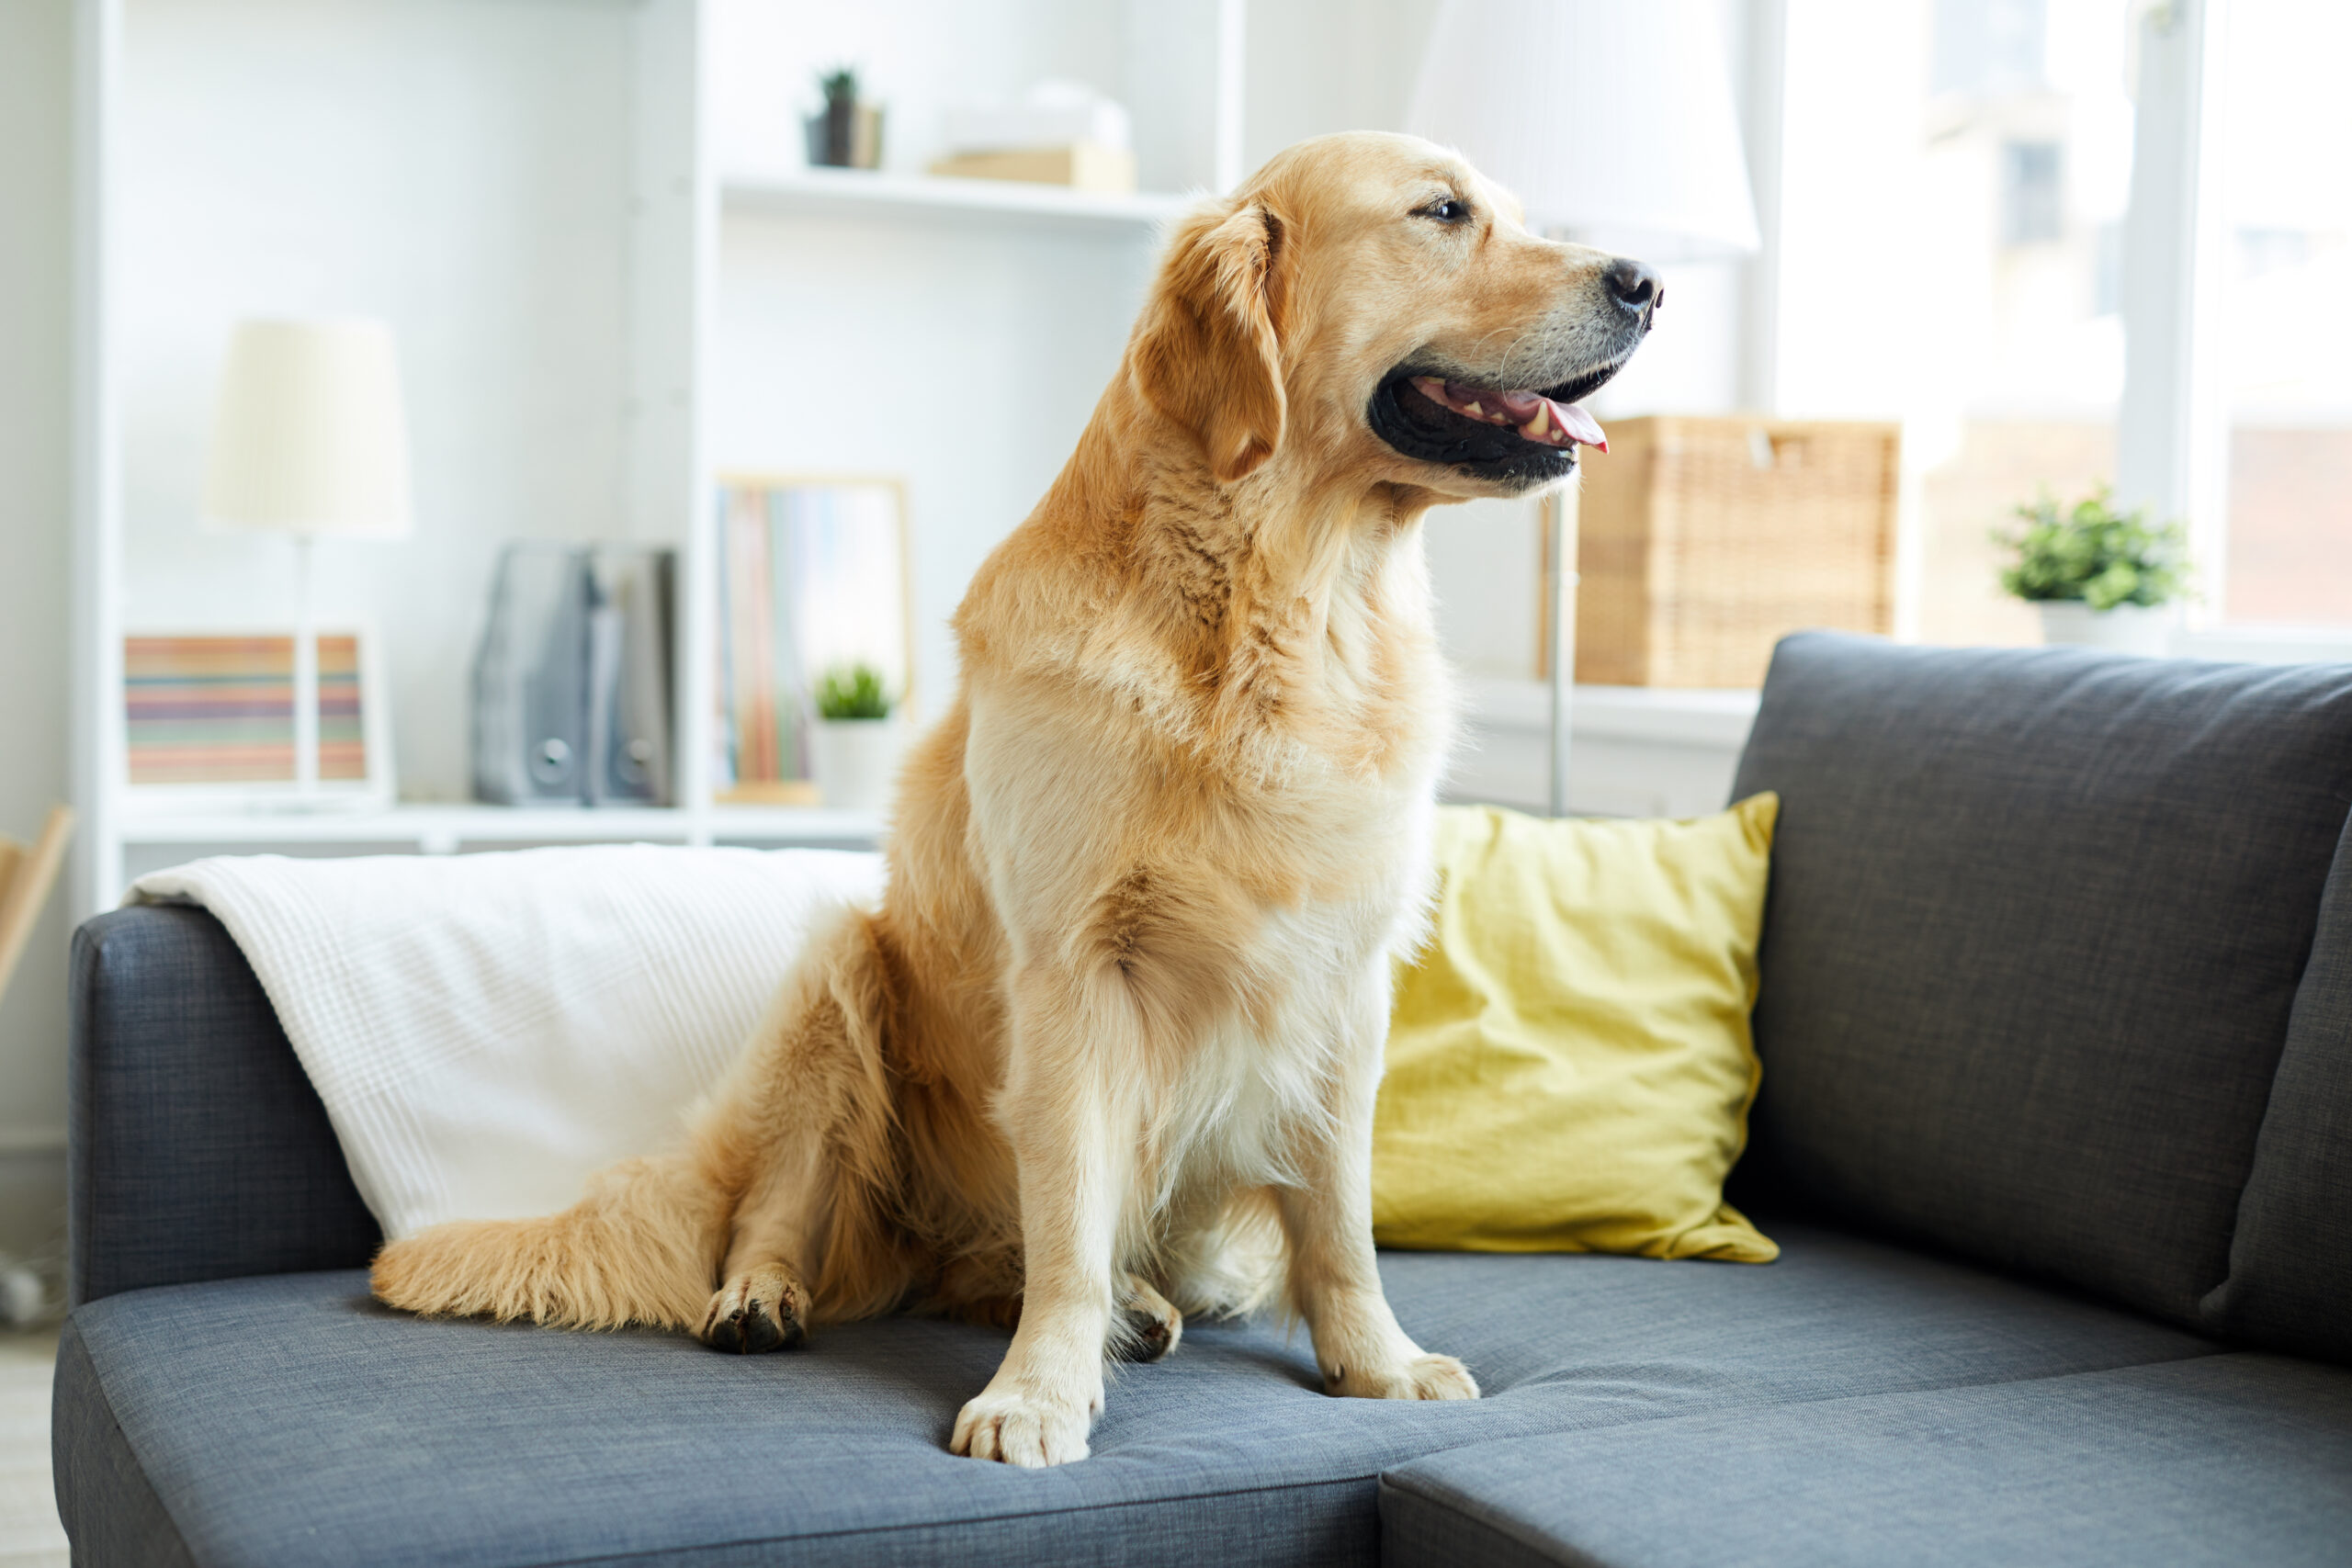 Golden Retriever sitting on the couch looking out the window.